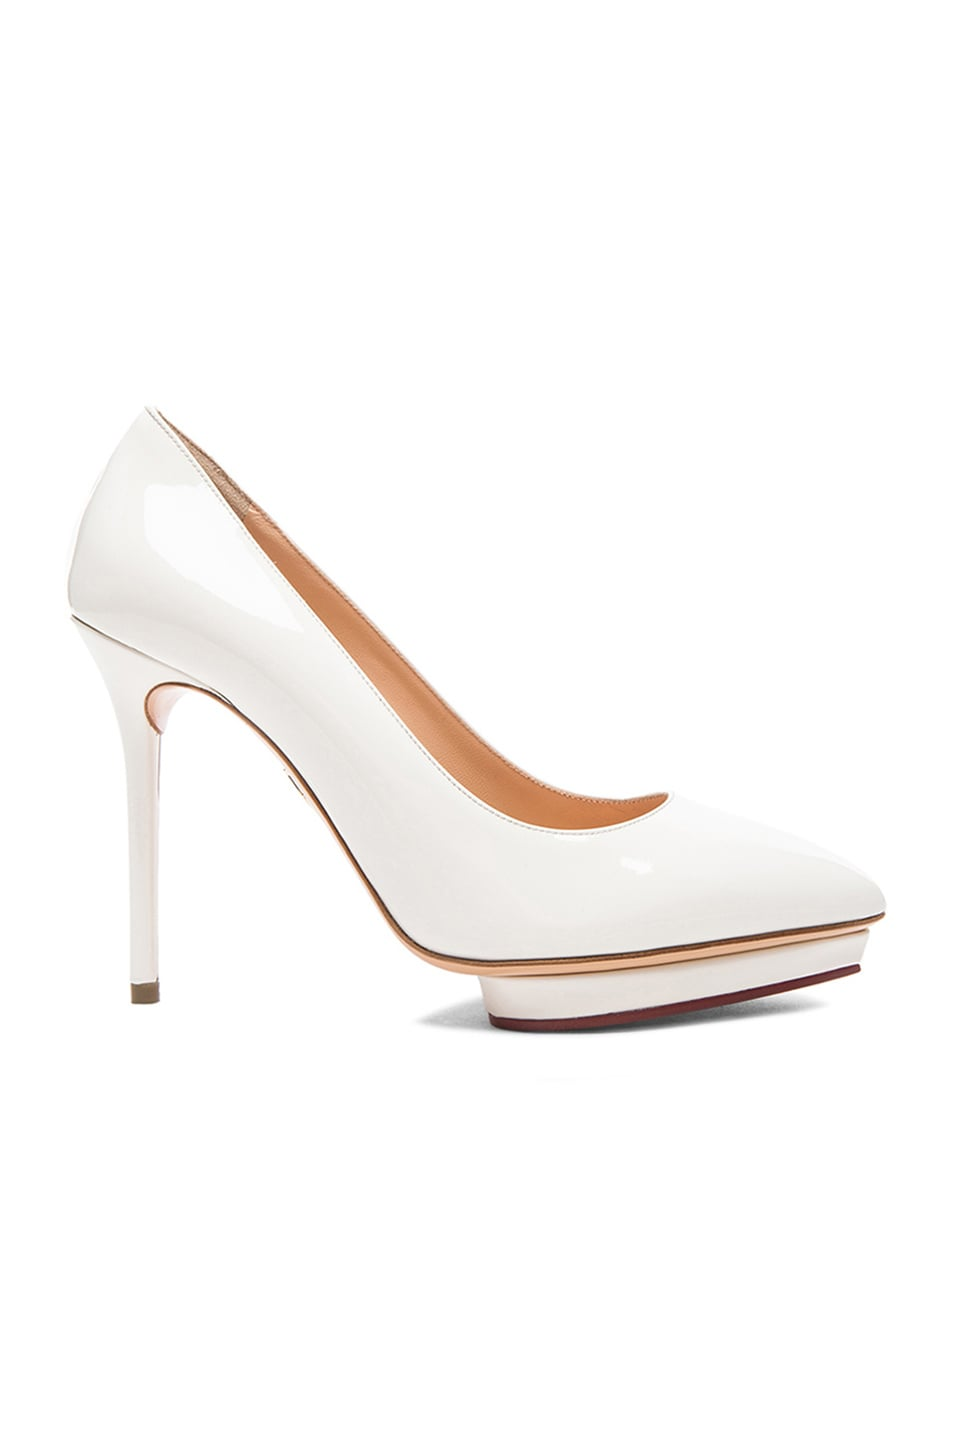 Charlotte Olympia Patent Leather Heels uPV7WS2yvE